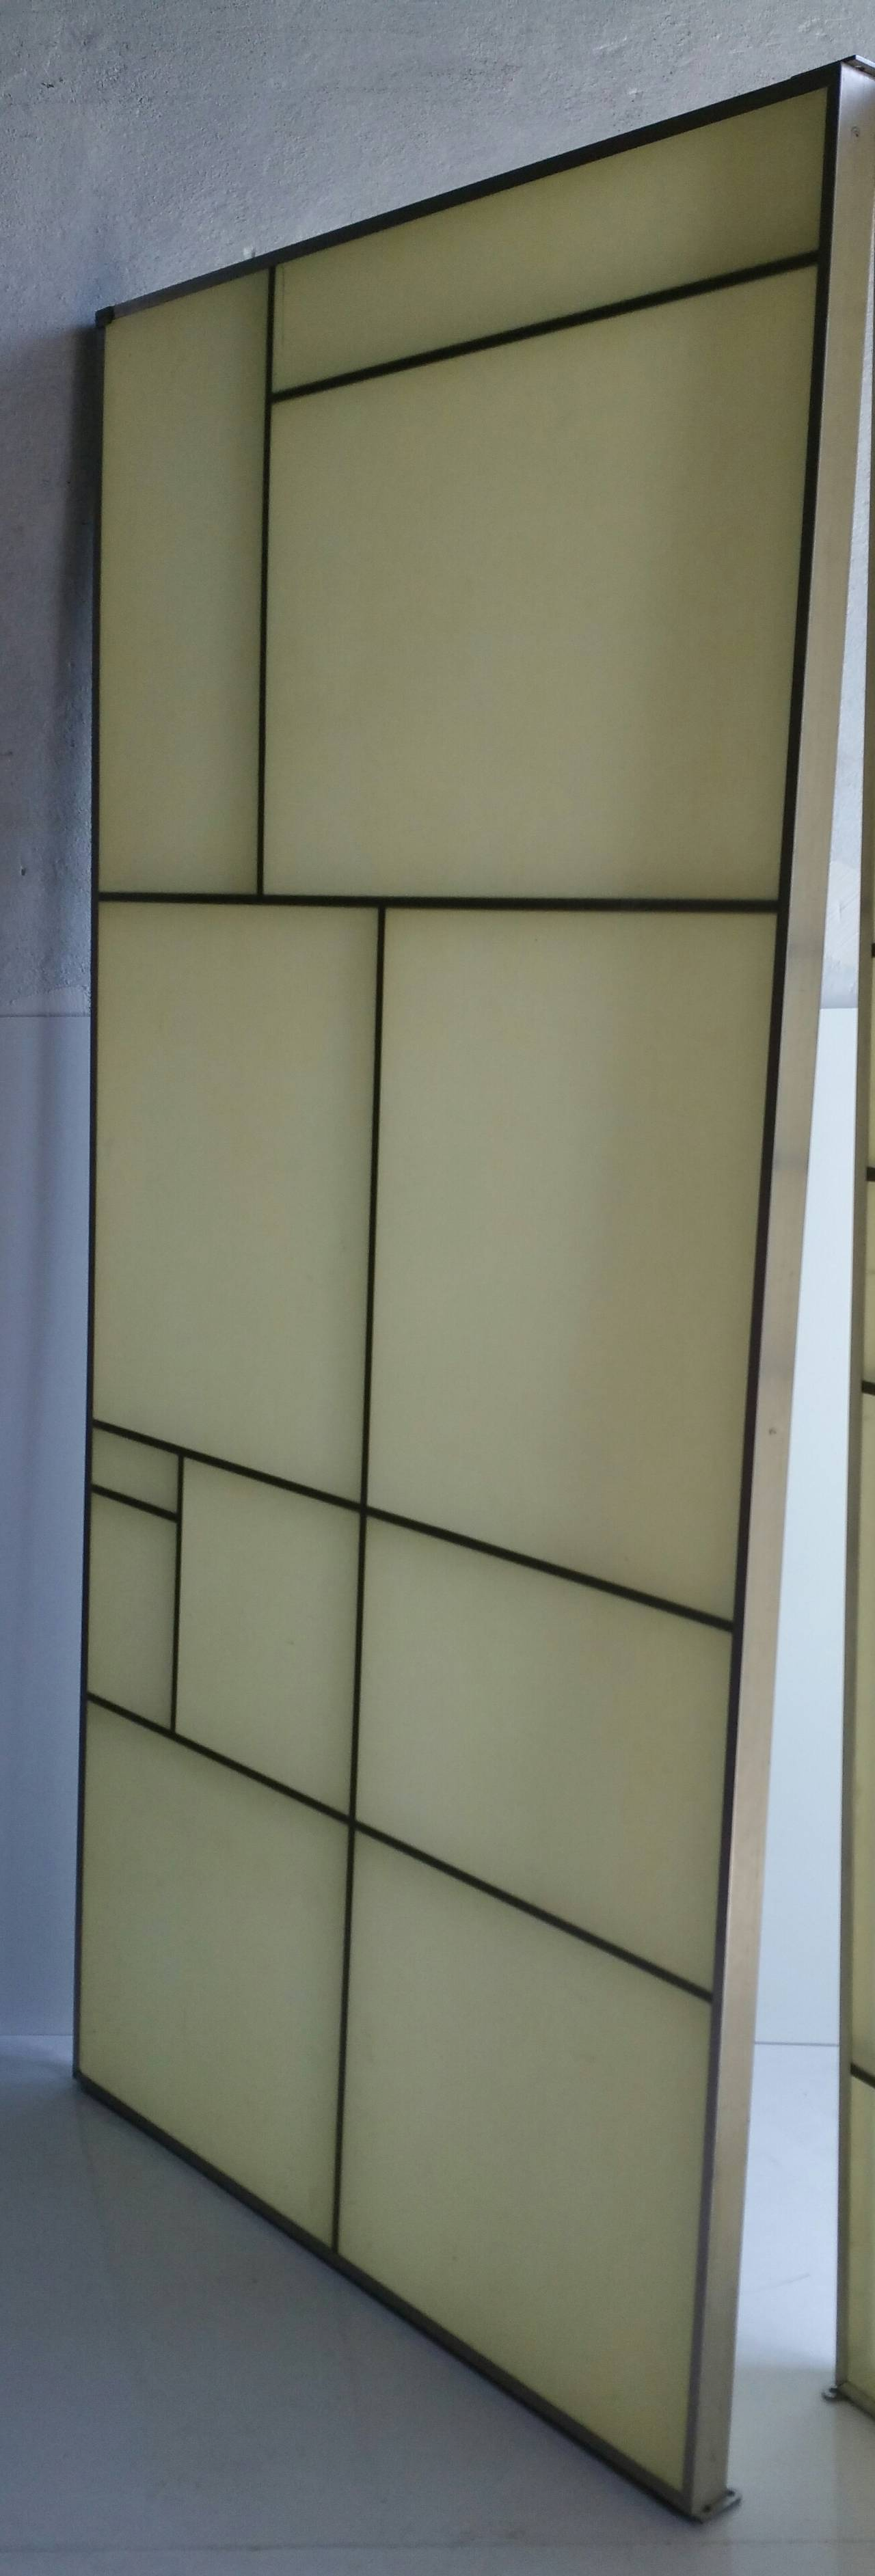 Mid-Century Modern Architectural Aluminum and Fiberglass Panels or Screen, Mondrian Design For Sale